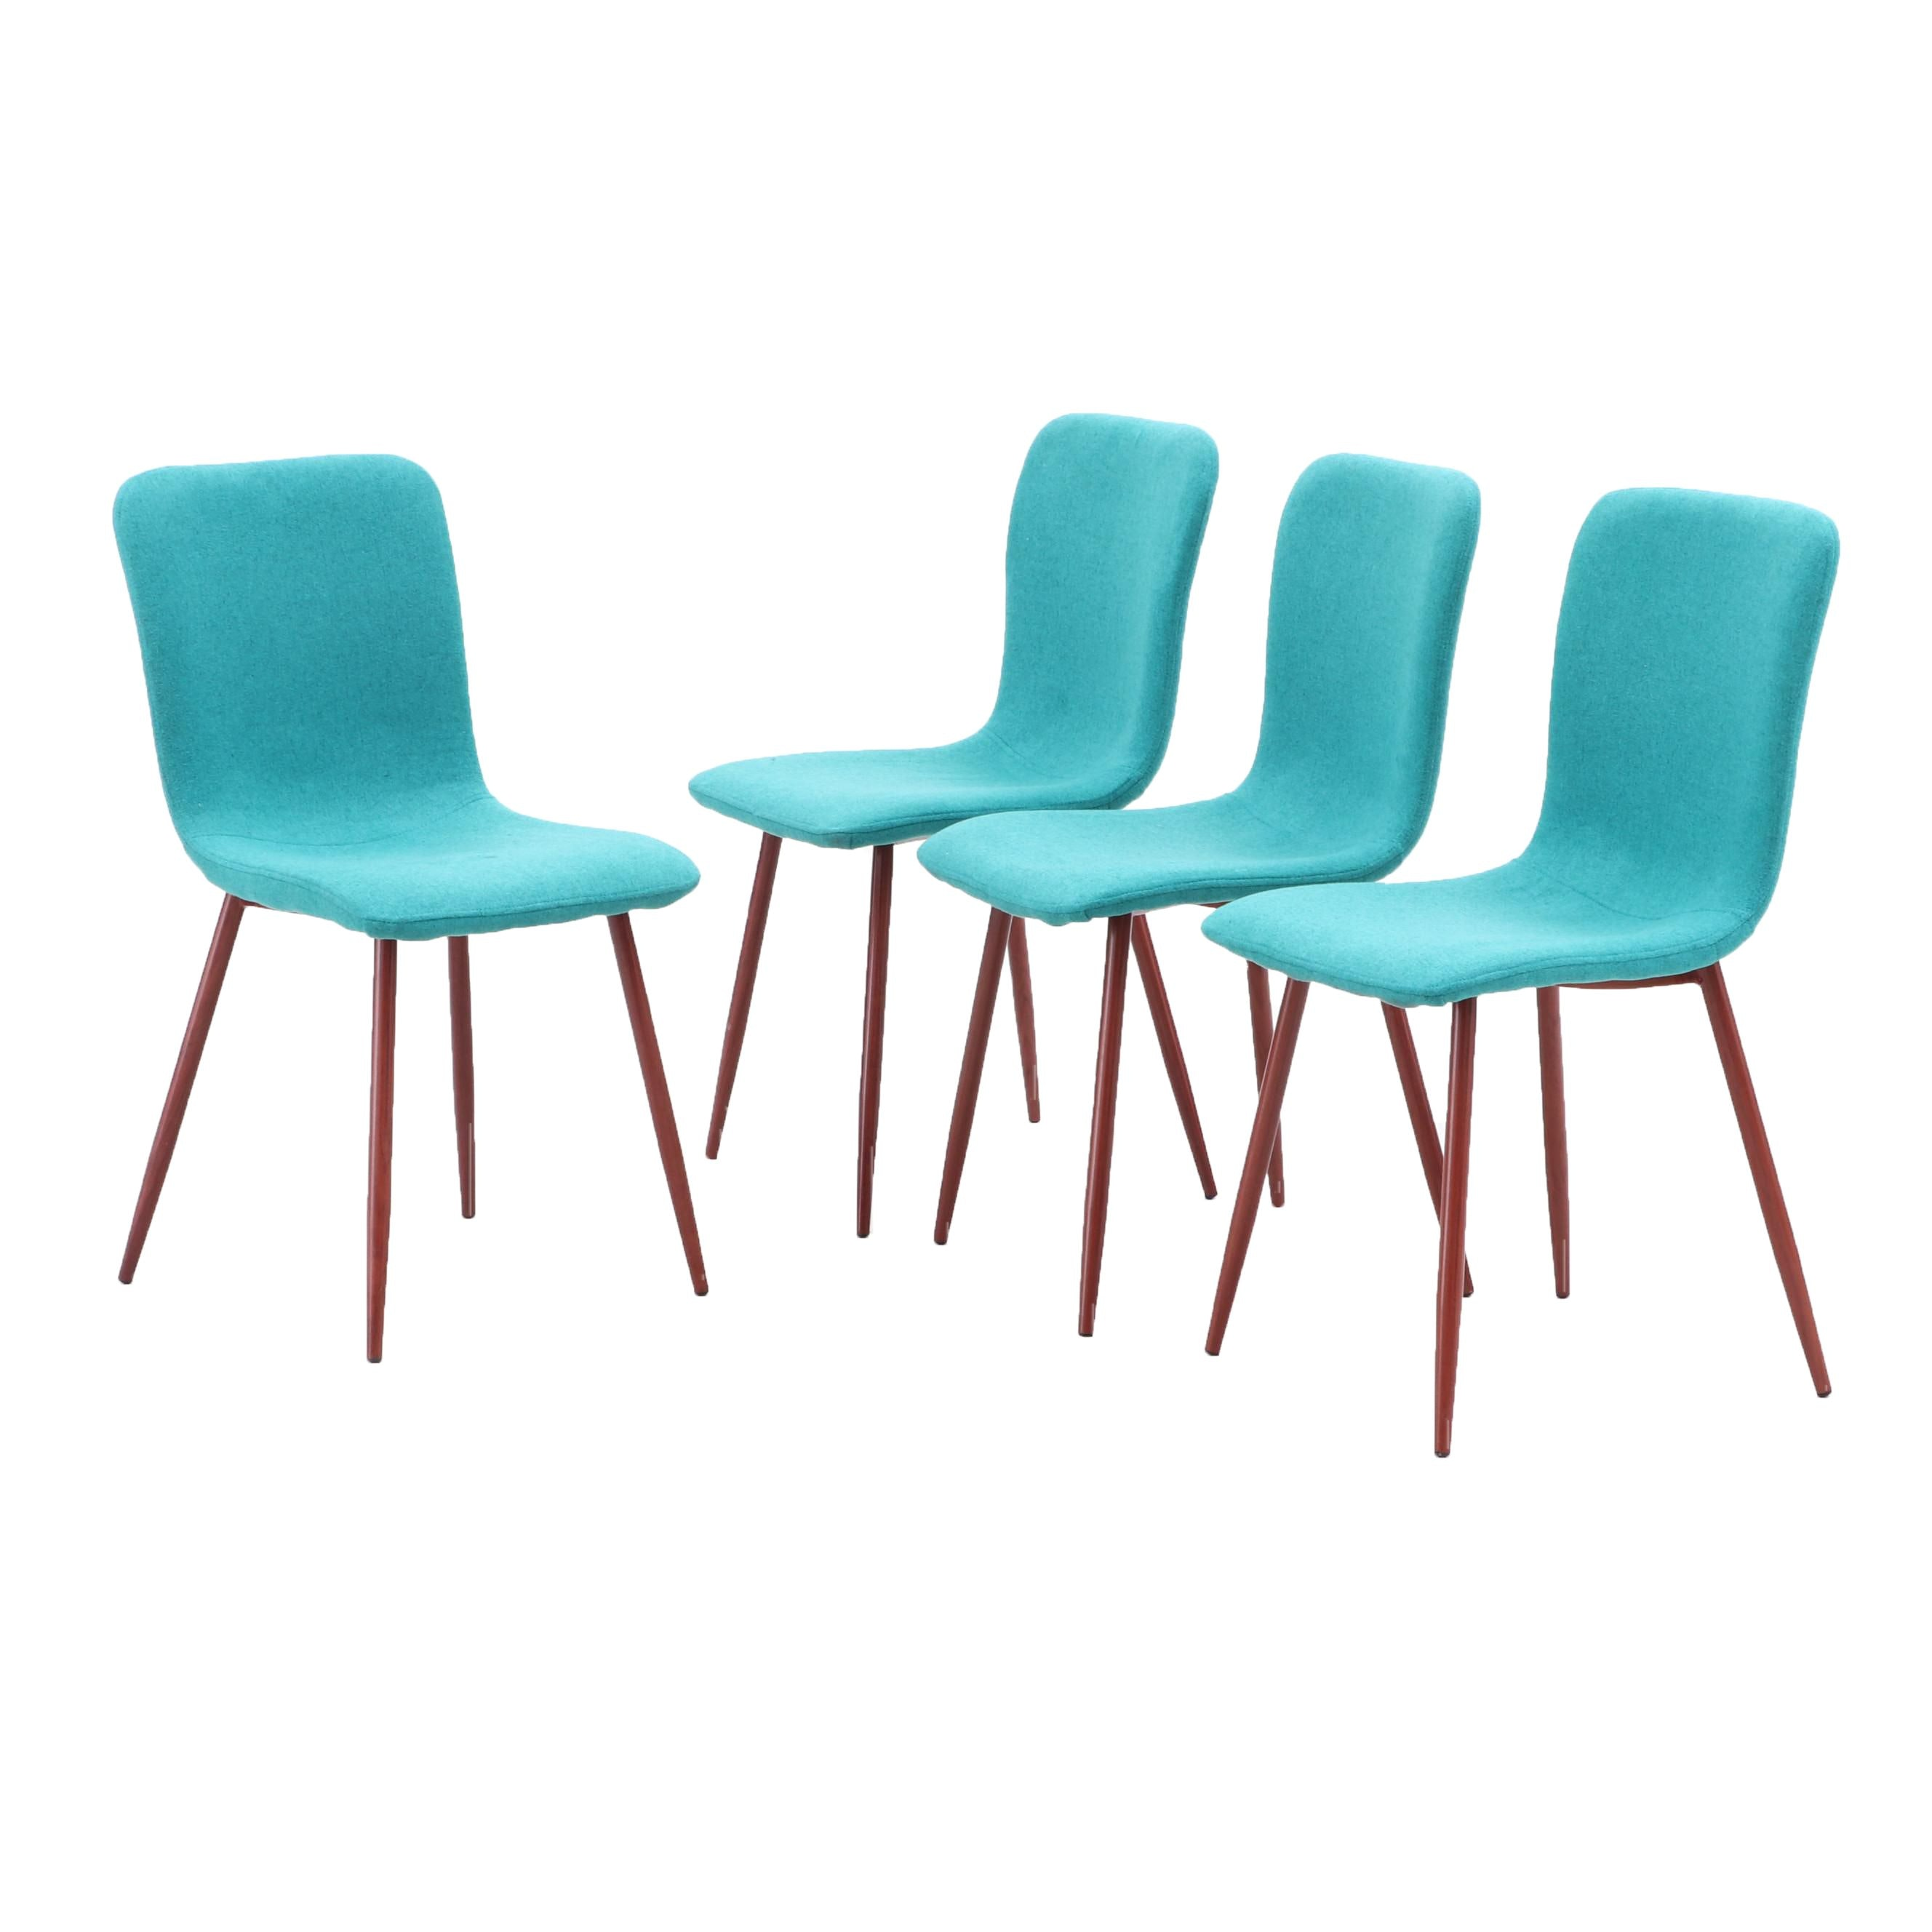 Four Coavas Style Dining Upholstered Chairs in Teal with Metal Legs